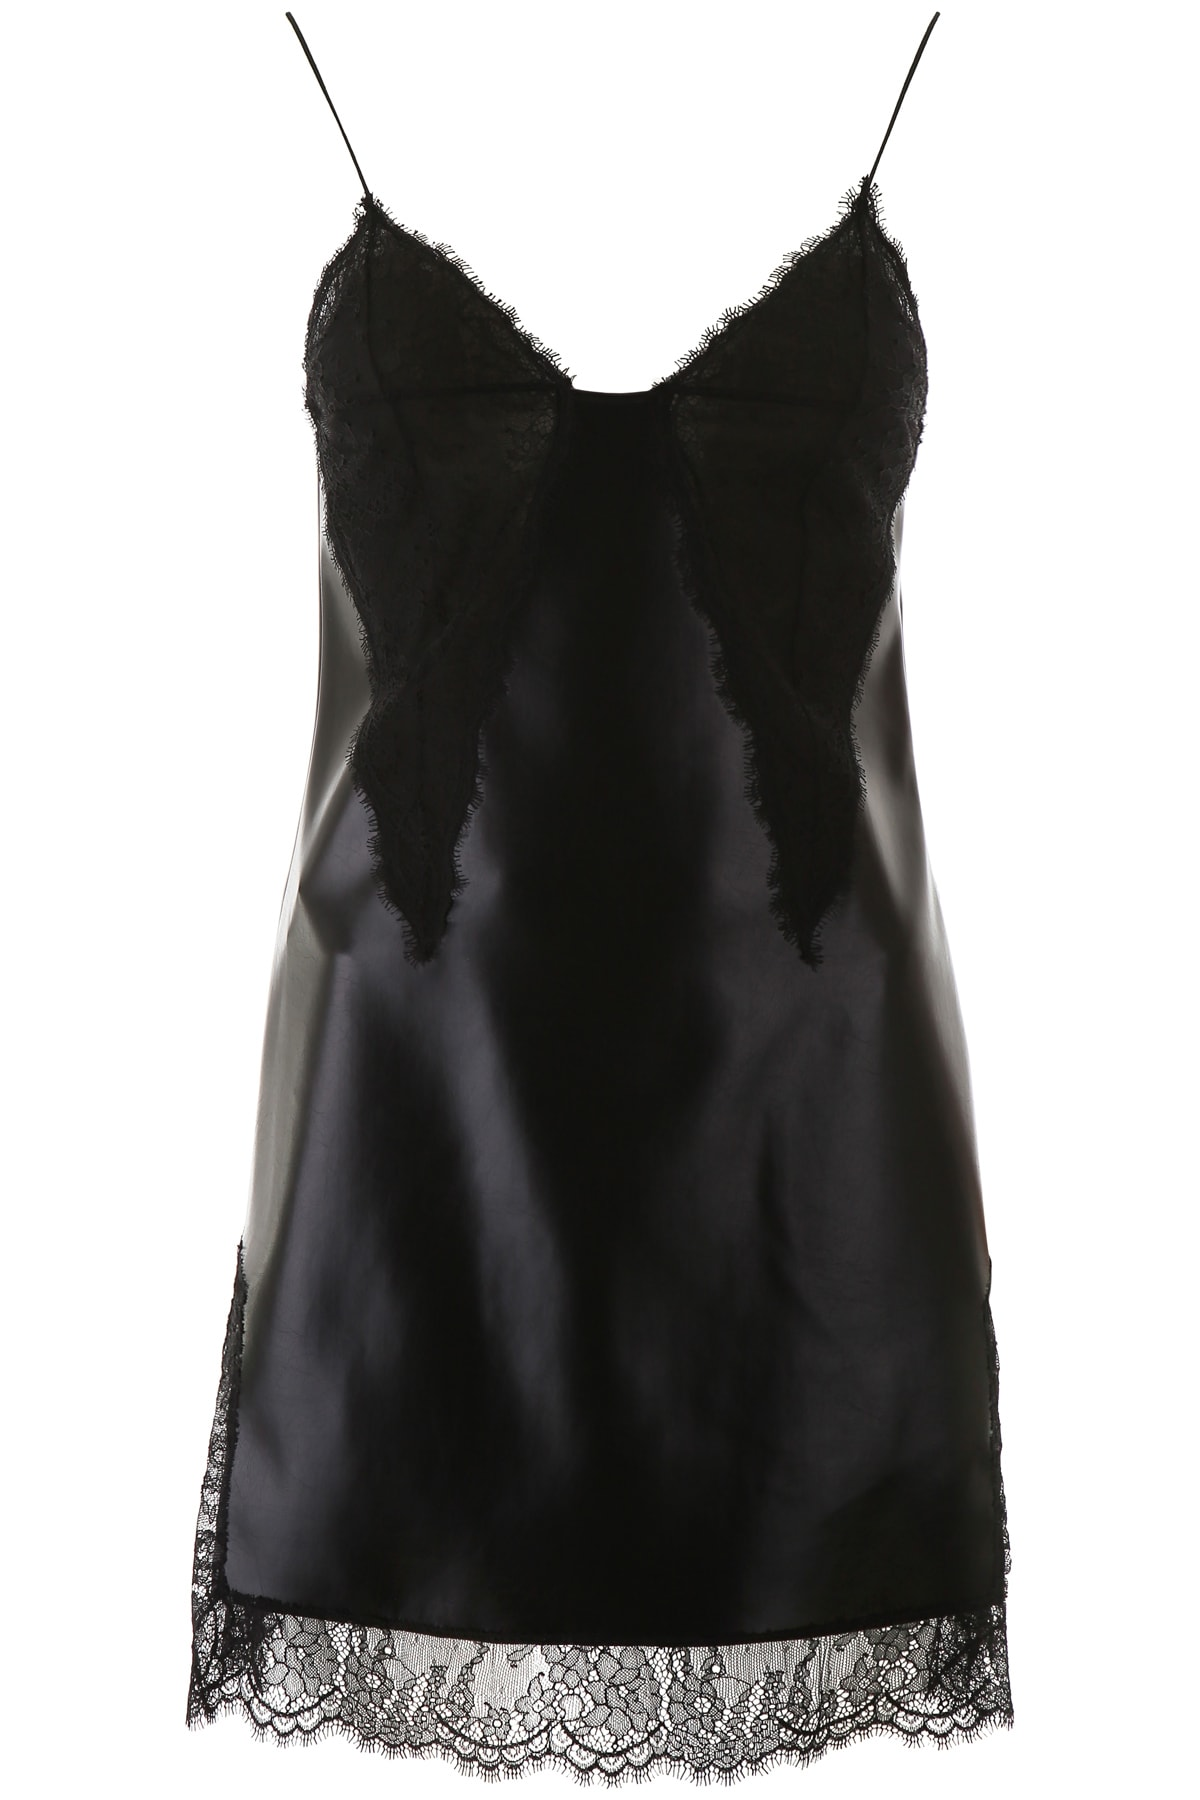 Buy Philosophy di Lorenzo Serafini Mini Dress With Lace online, shop Philosophy di Lorenzo Serafini with free shipping